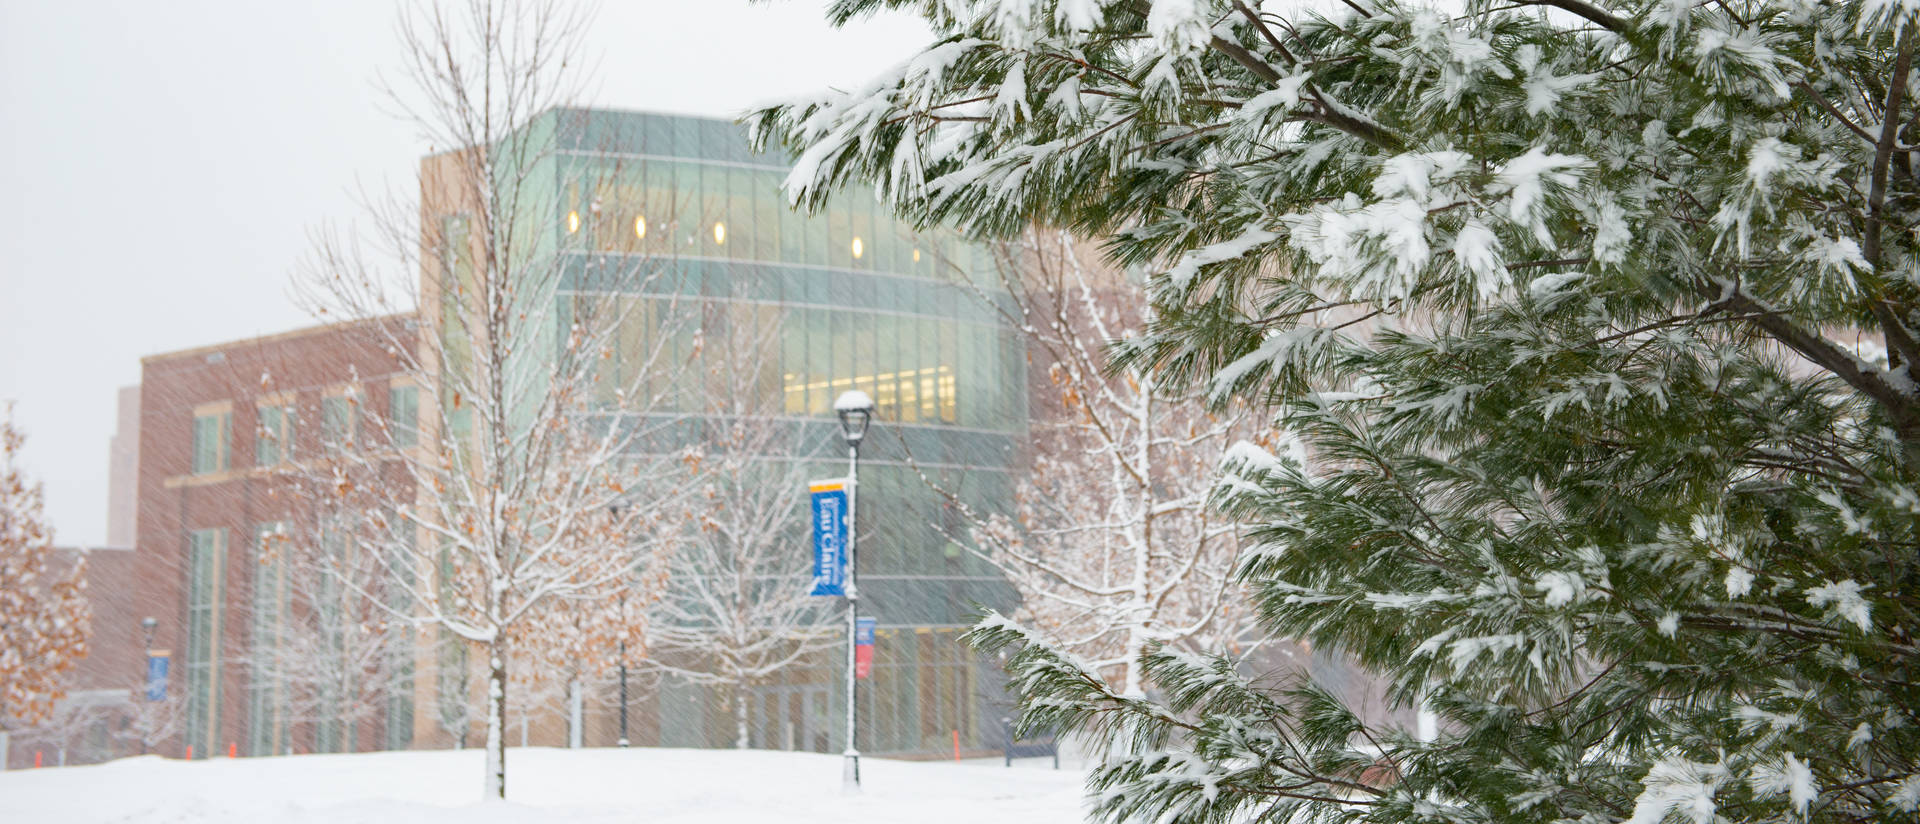 Centennial Hall during snowfall